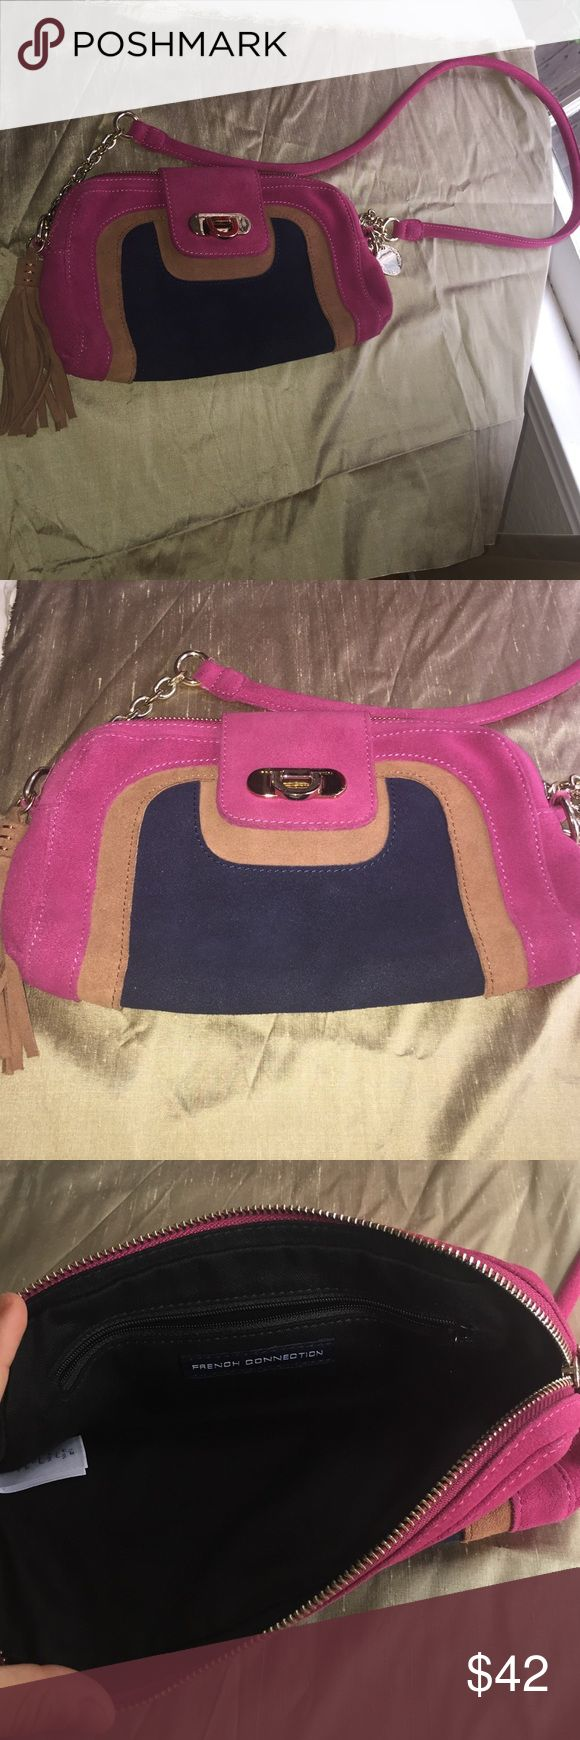 SALE! French Connection purse French Connection pink suede leather purse. Strap is perfect for shoulder/crossbody. Has an internal zipper pocket. Fringe hanging detail. Amazing look! About 10.5 inches wide and about 7 inches high. pair it with a body con dress for a night out! Excellent condition. French Connection Bags Shoulder Bags